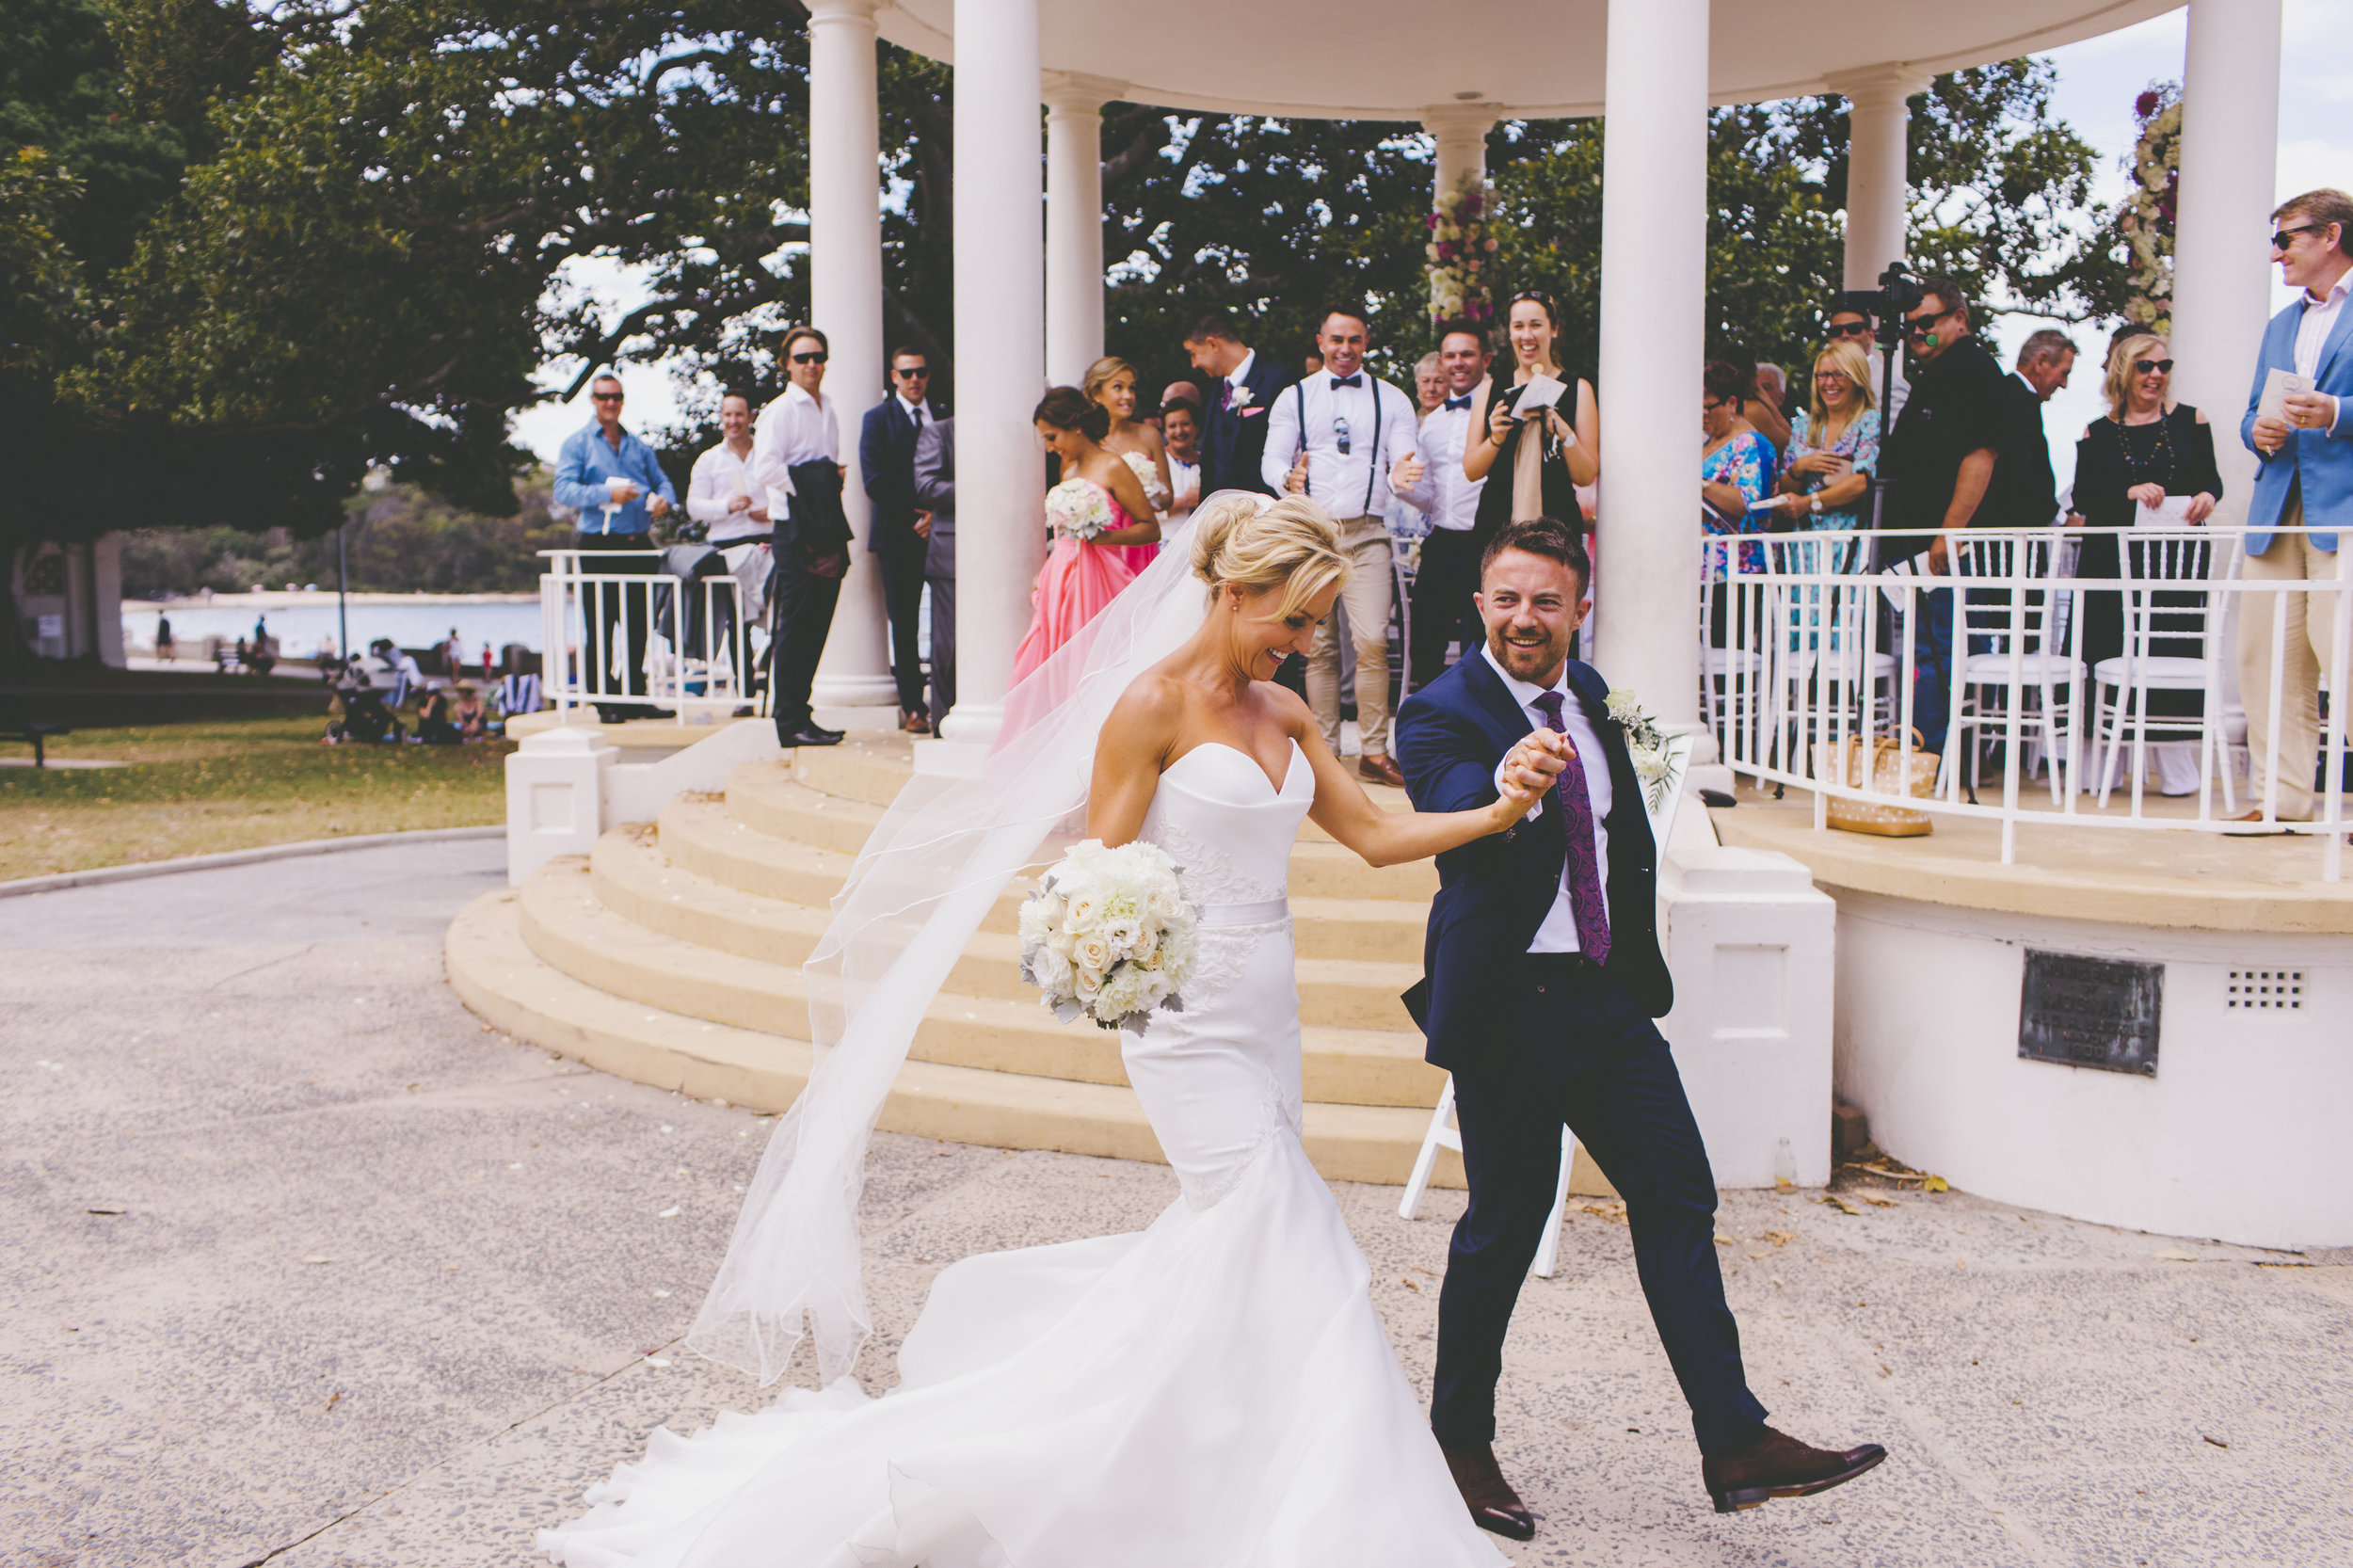 Bride and Groom at Balmoral Beach Wedding Ceremony after just getting married